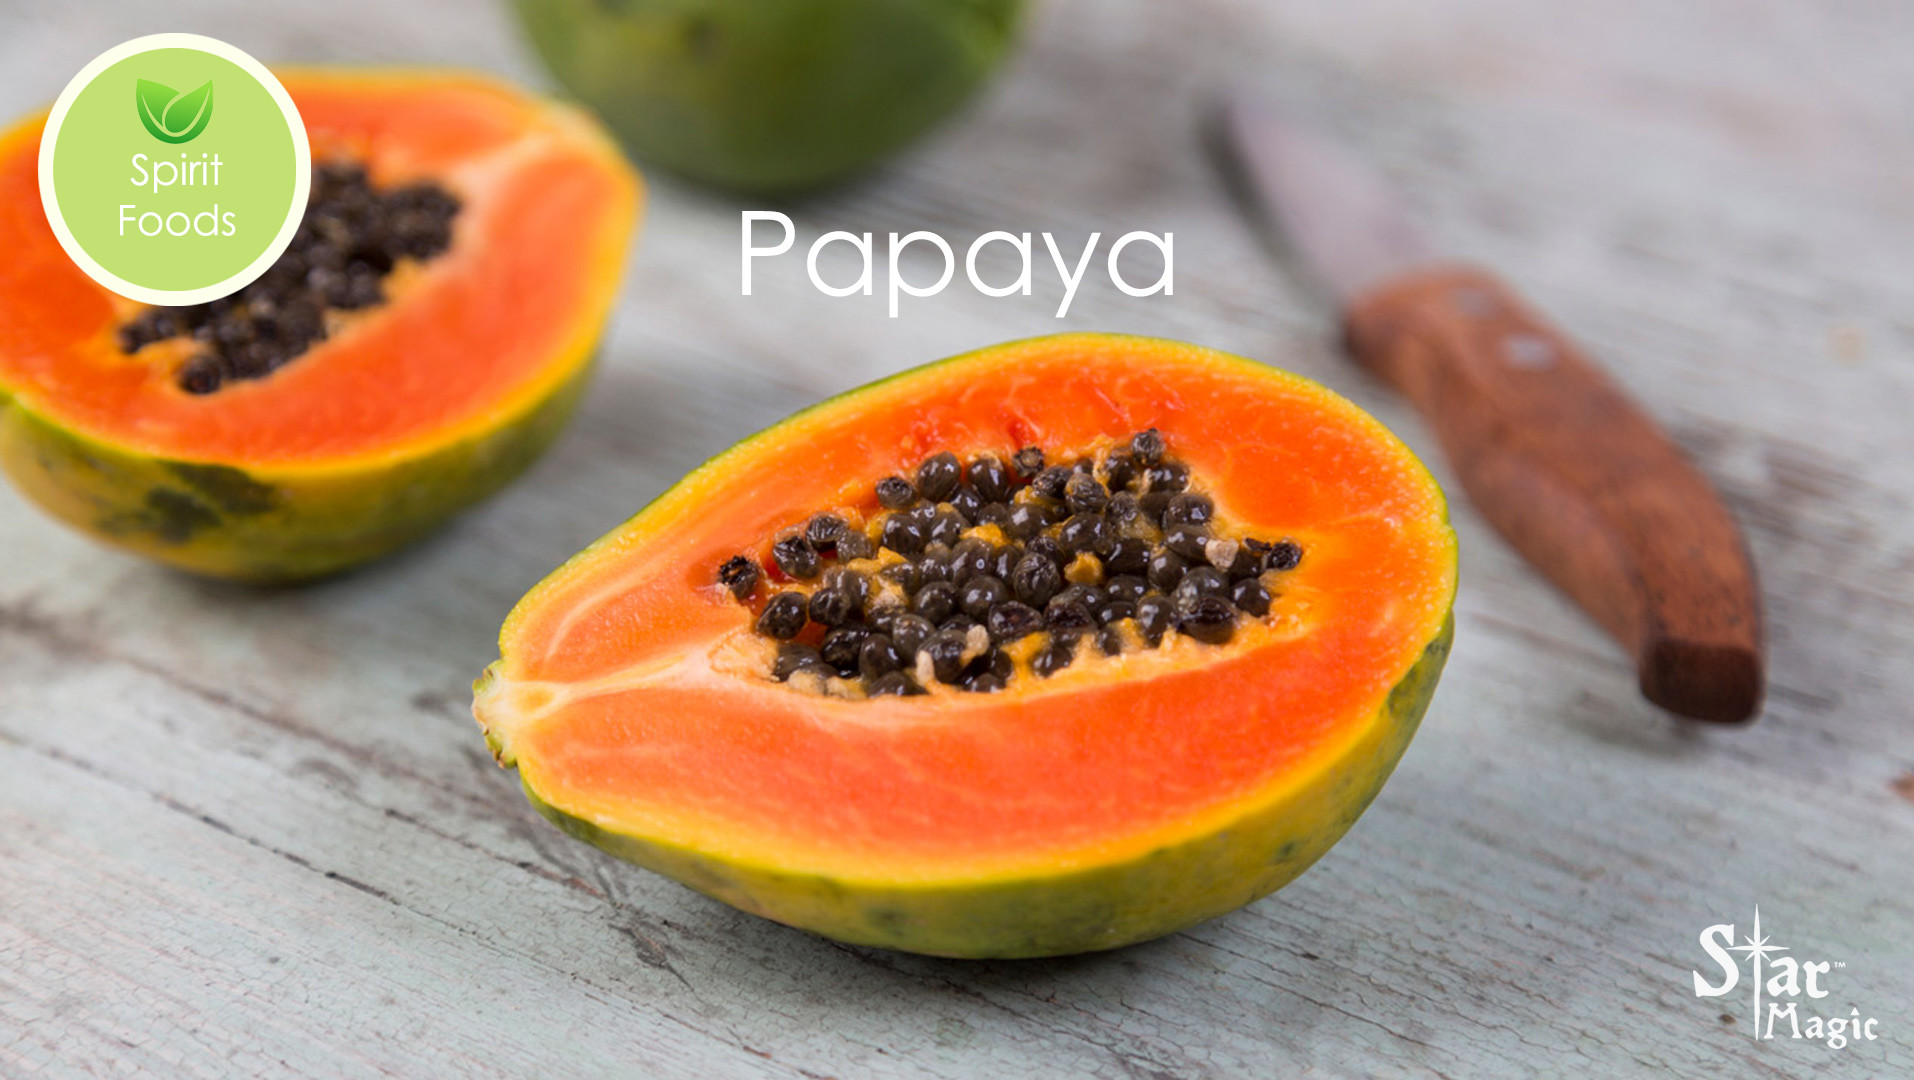 Spirit Food – Papaya